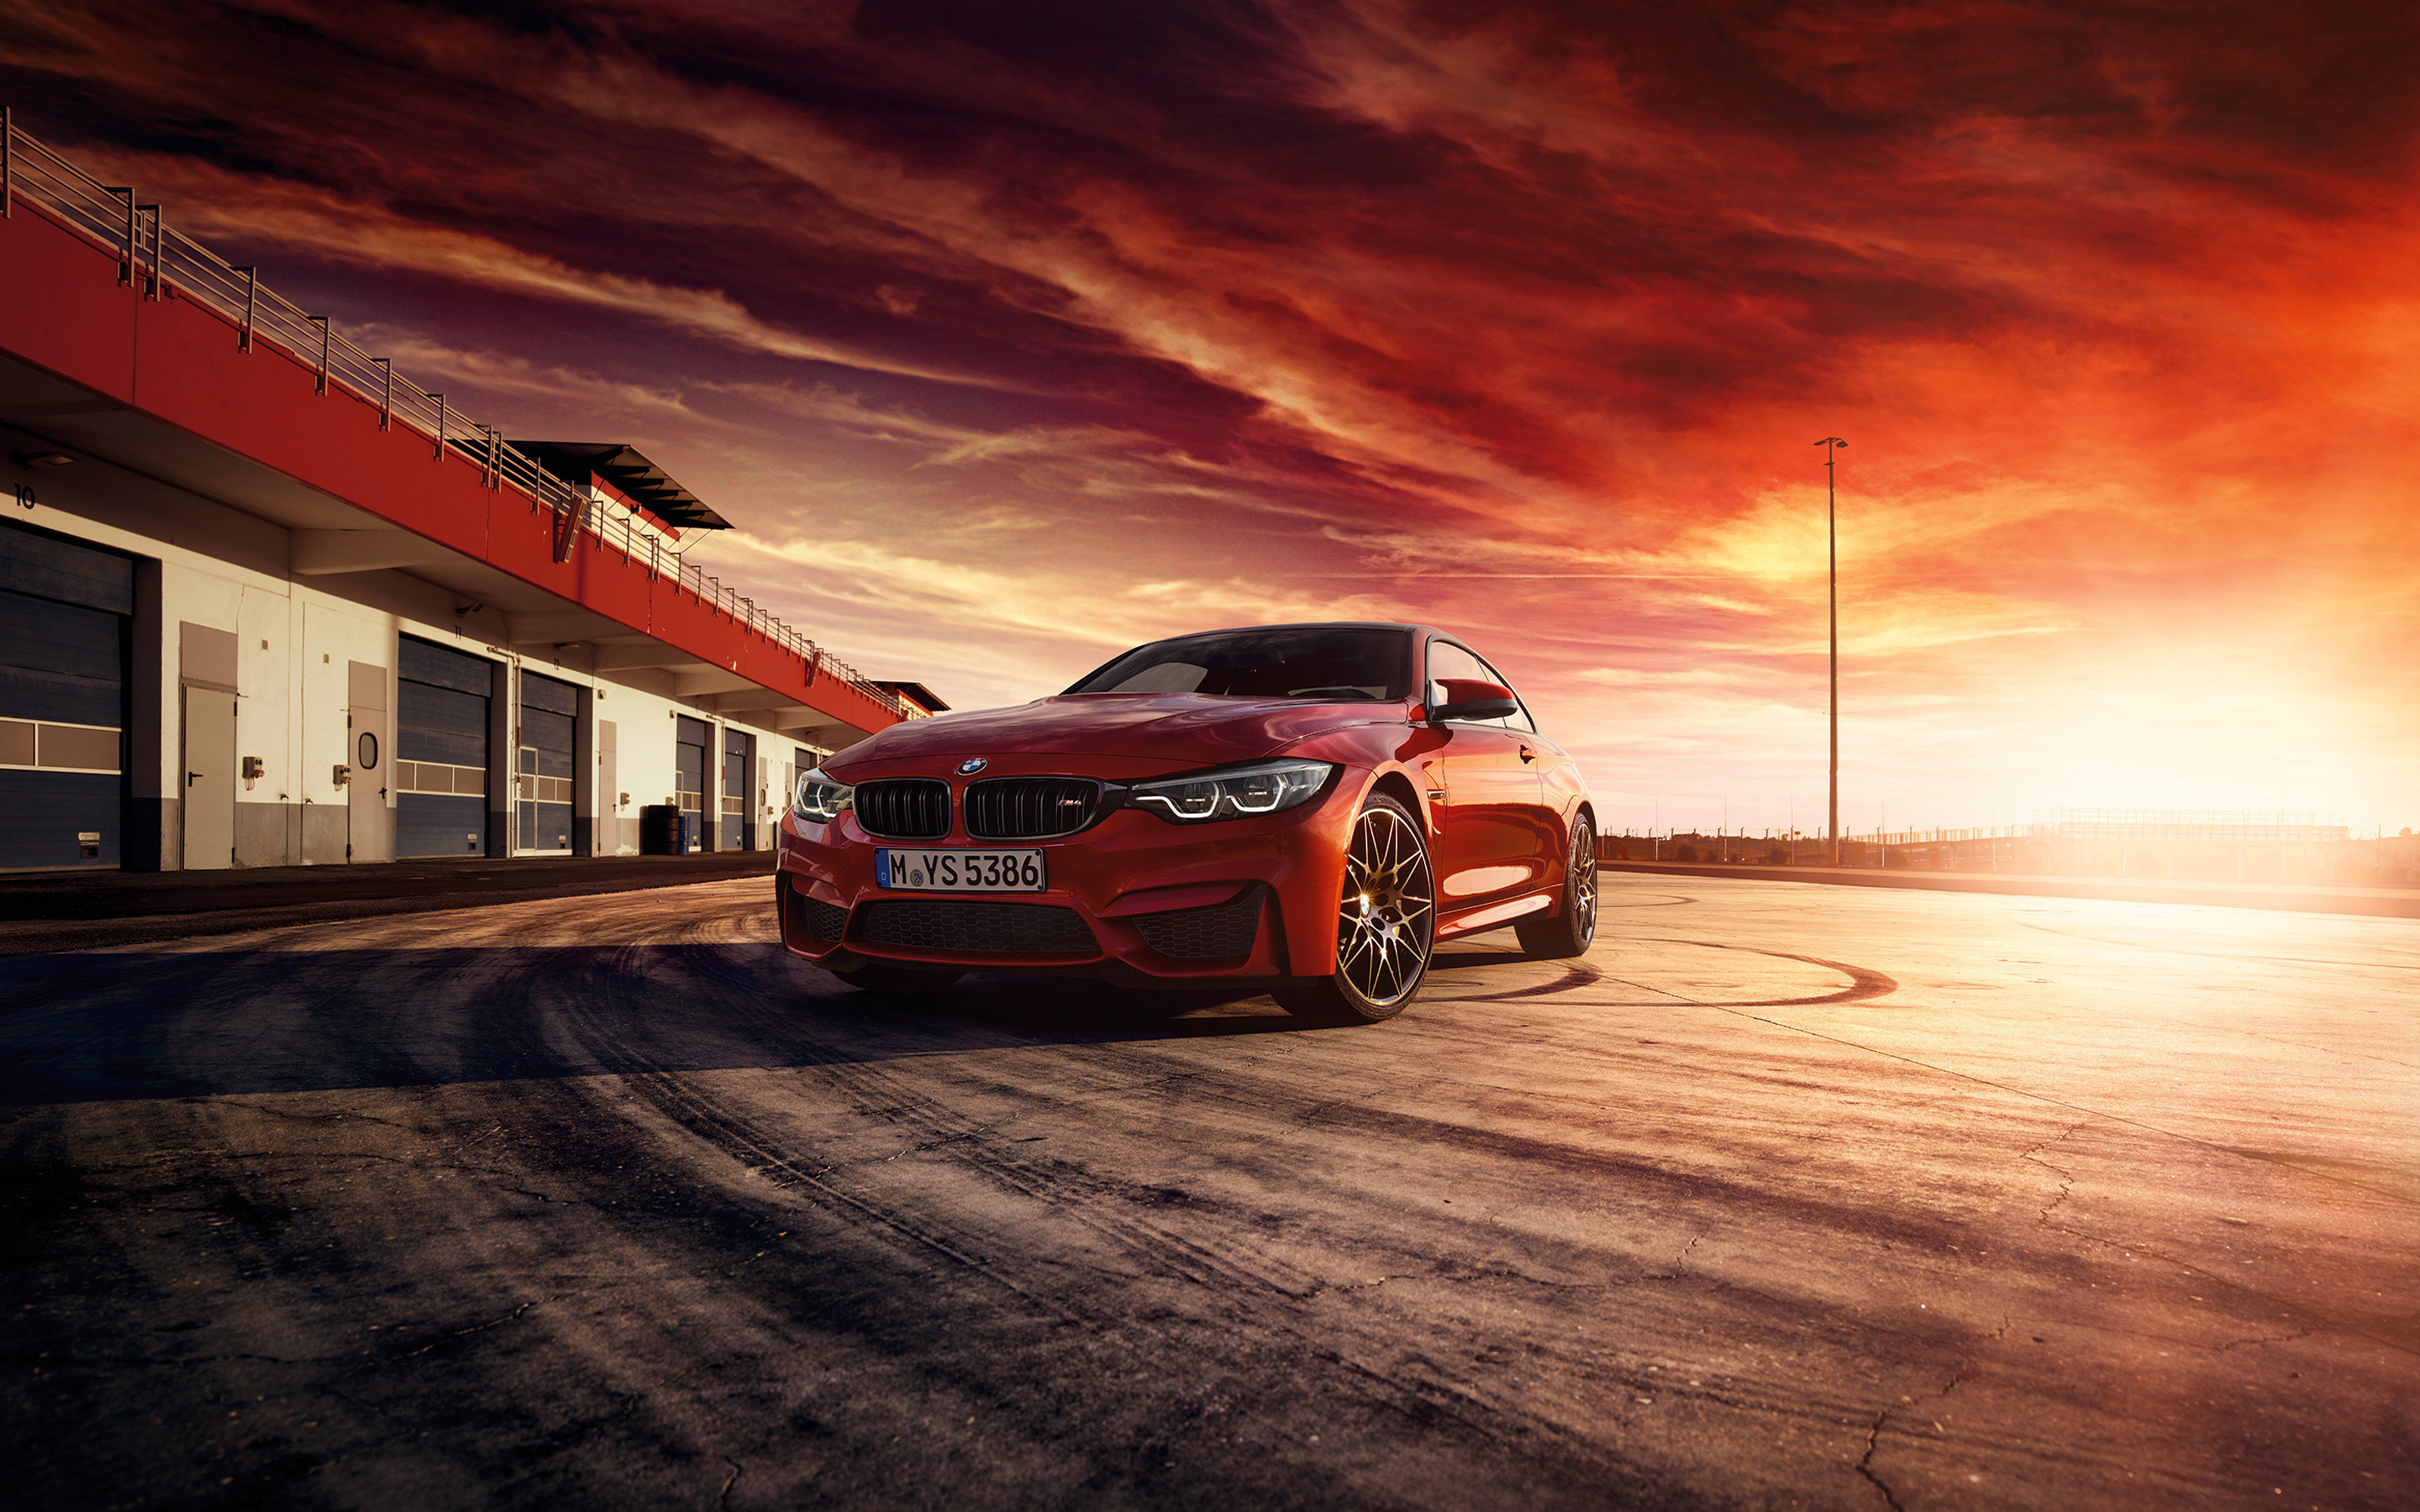 BMW M4 Coupe 201726951311 - BMW M4 Coupe 2017 - Coupe, bmw, 2018, 2017